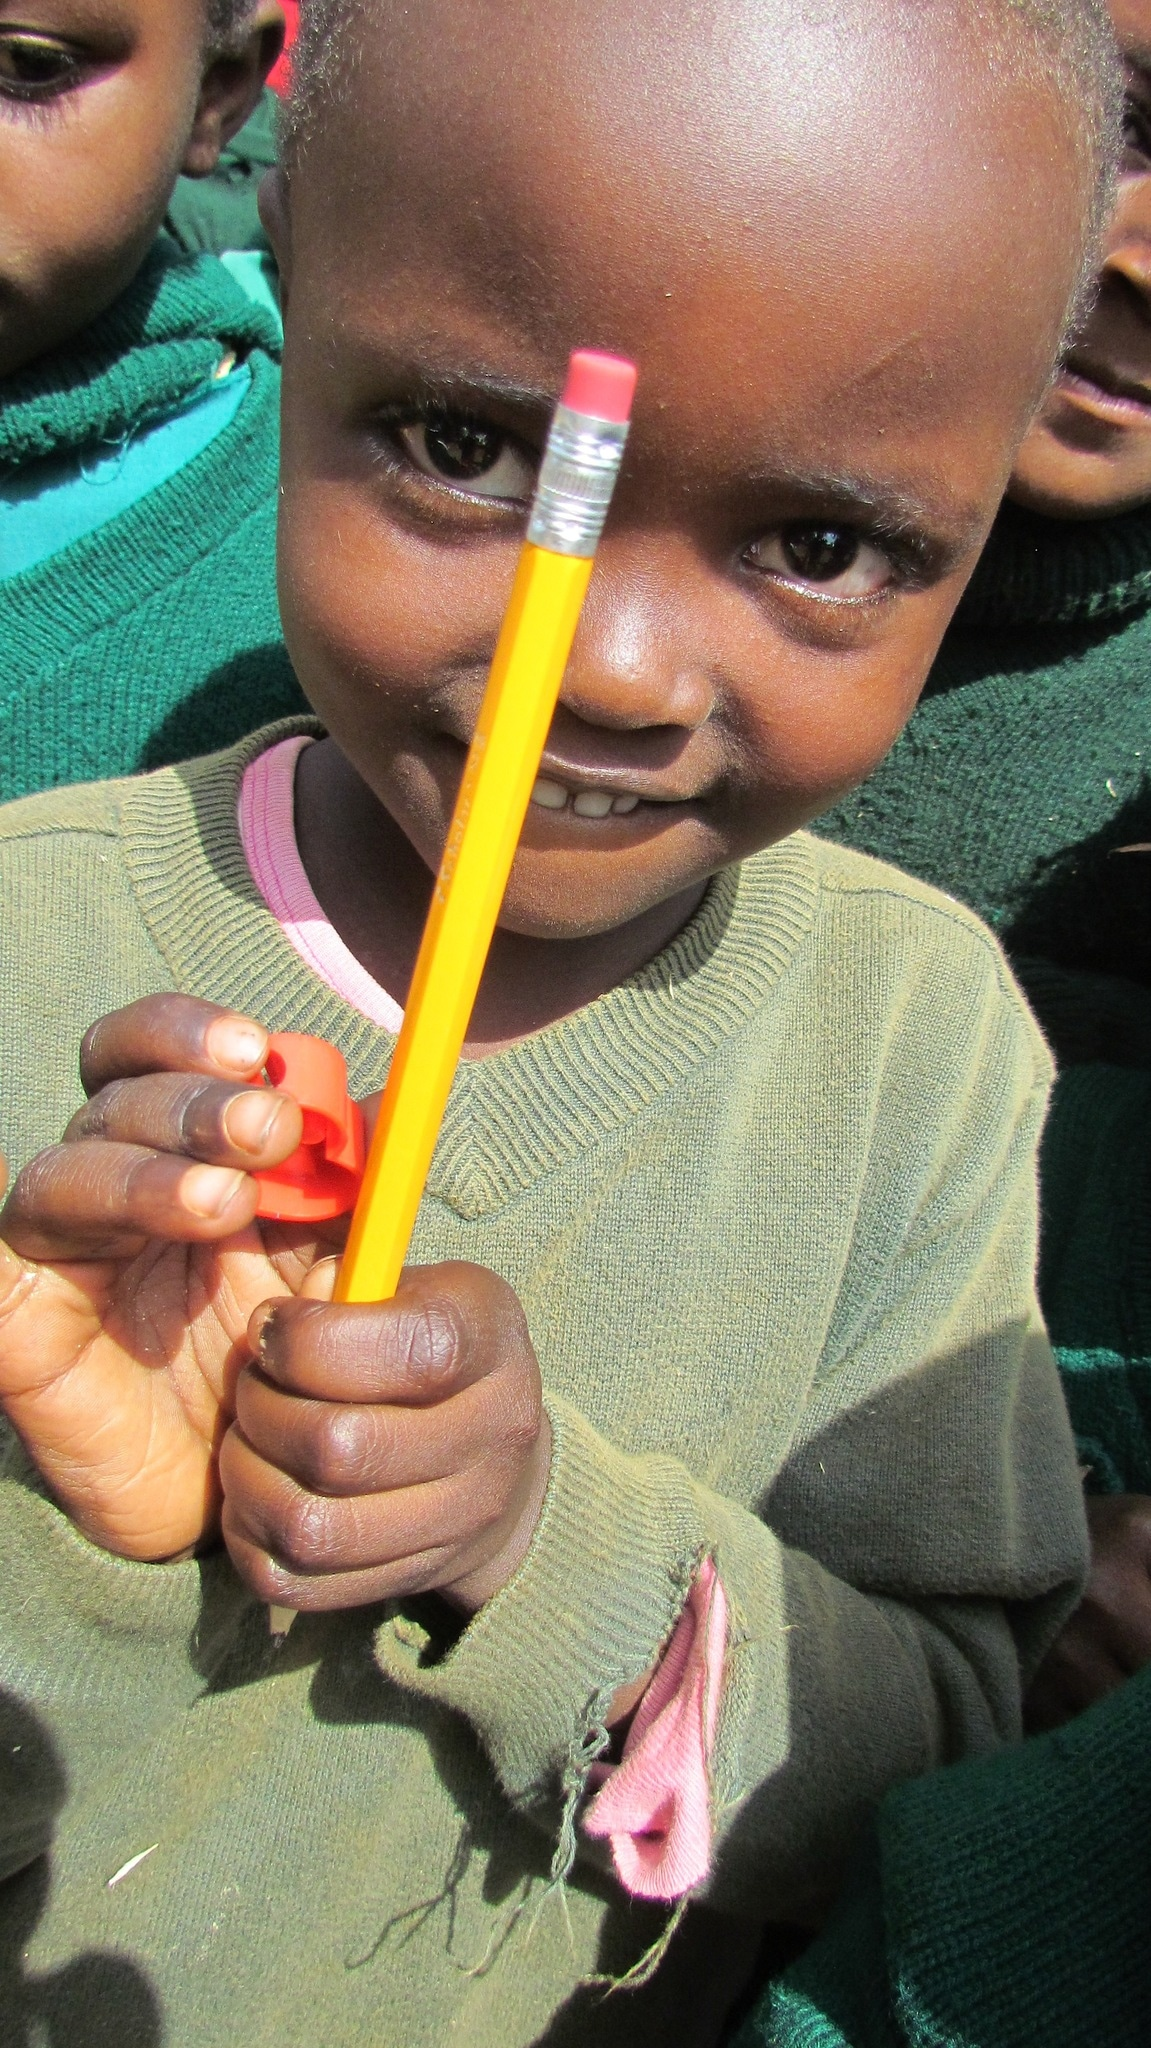 Every pencil you donate reaches a child in need.